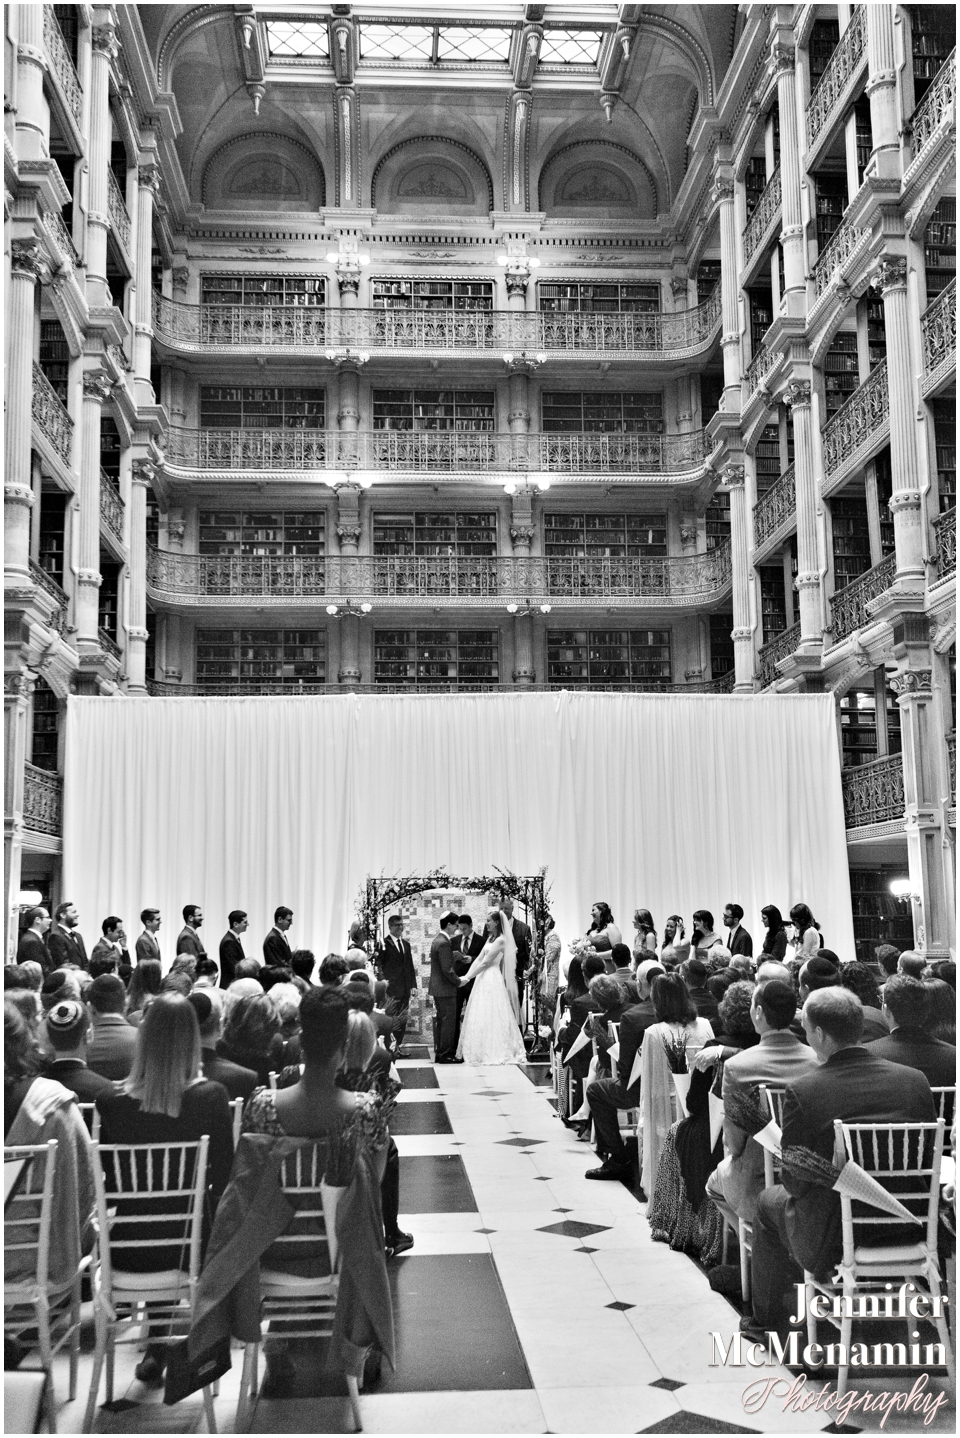 0074-WebbSlivnick_02811bw-0567_JenniferMcMenaminPhotography_George-Peabody-Library-wedding_Baltimore-wedding-photography_Baltimore-wedding-photographer